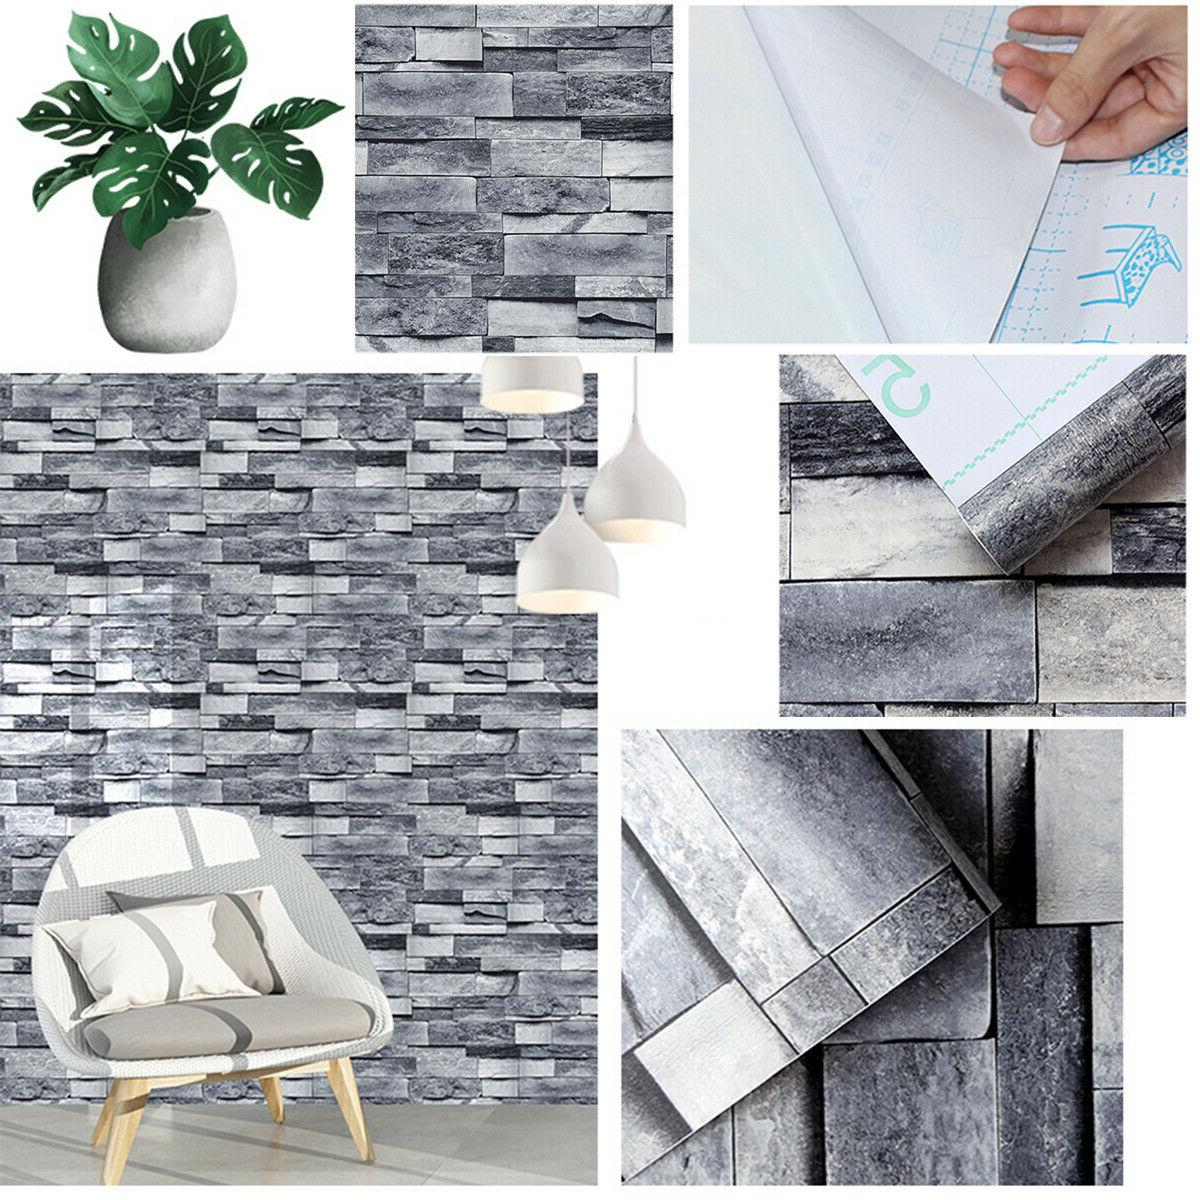 3D Stone Wallpaper Adhesive Stickers Kitchen Bedroom